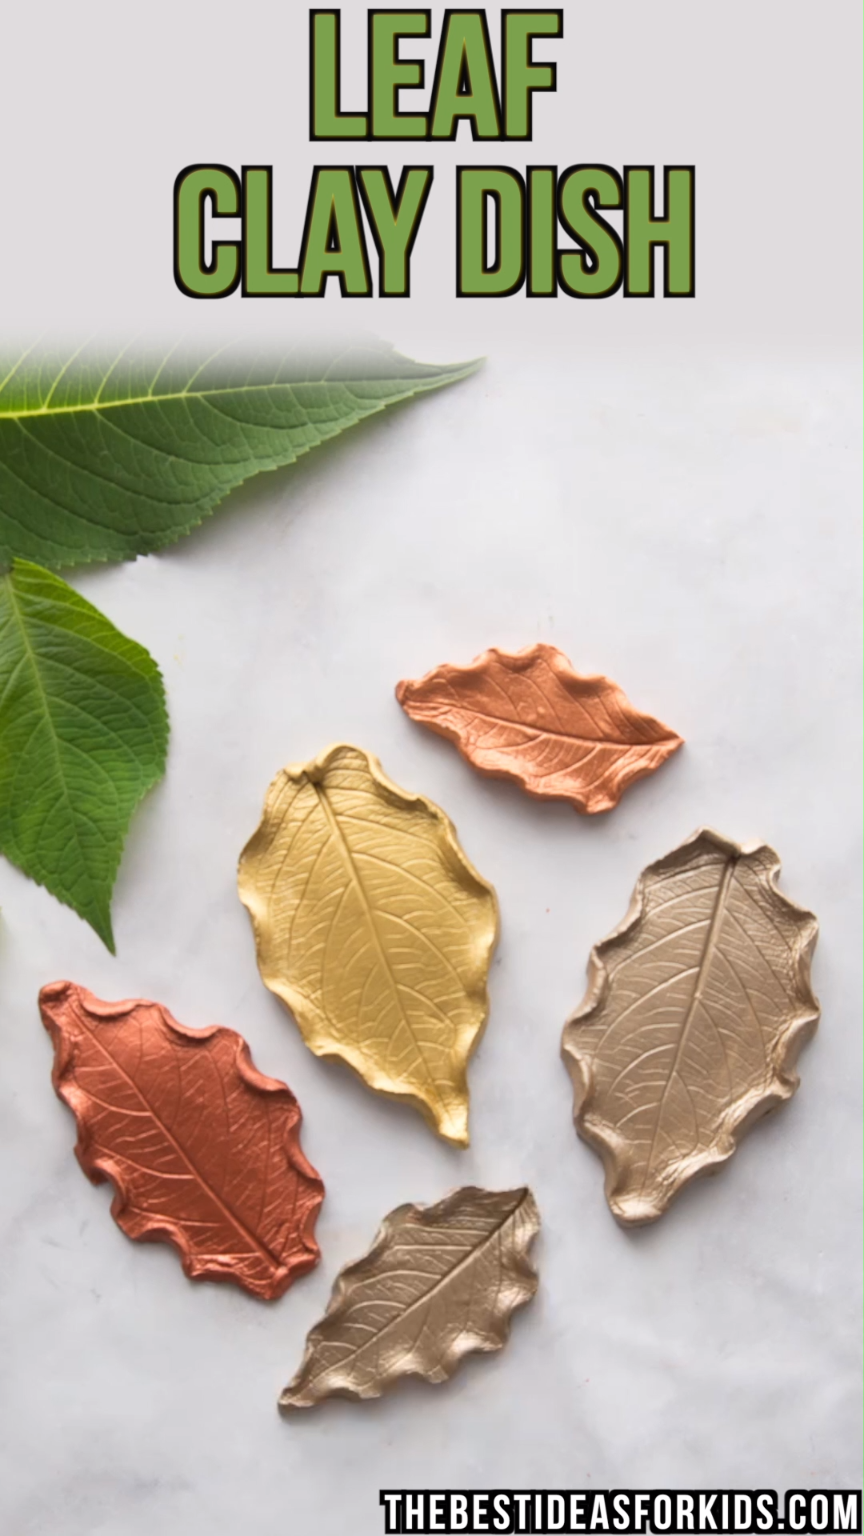 Leaf Clay Dish Leaf Clay Dish Diy Craft Videos diy craft projects videos